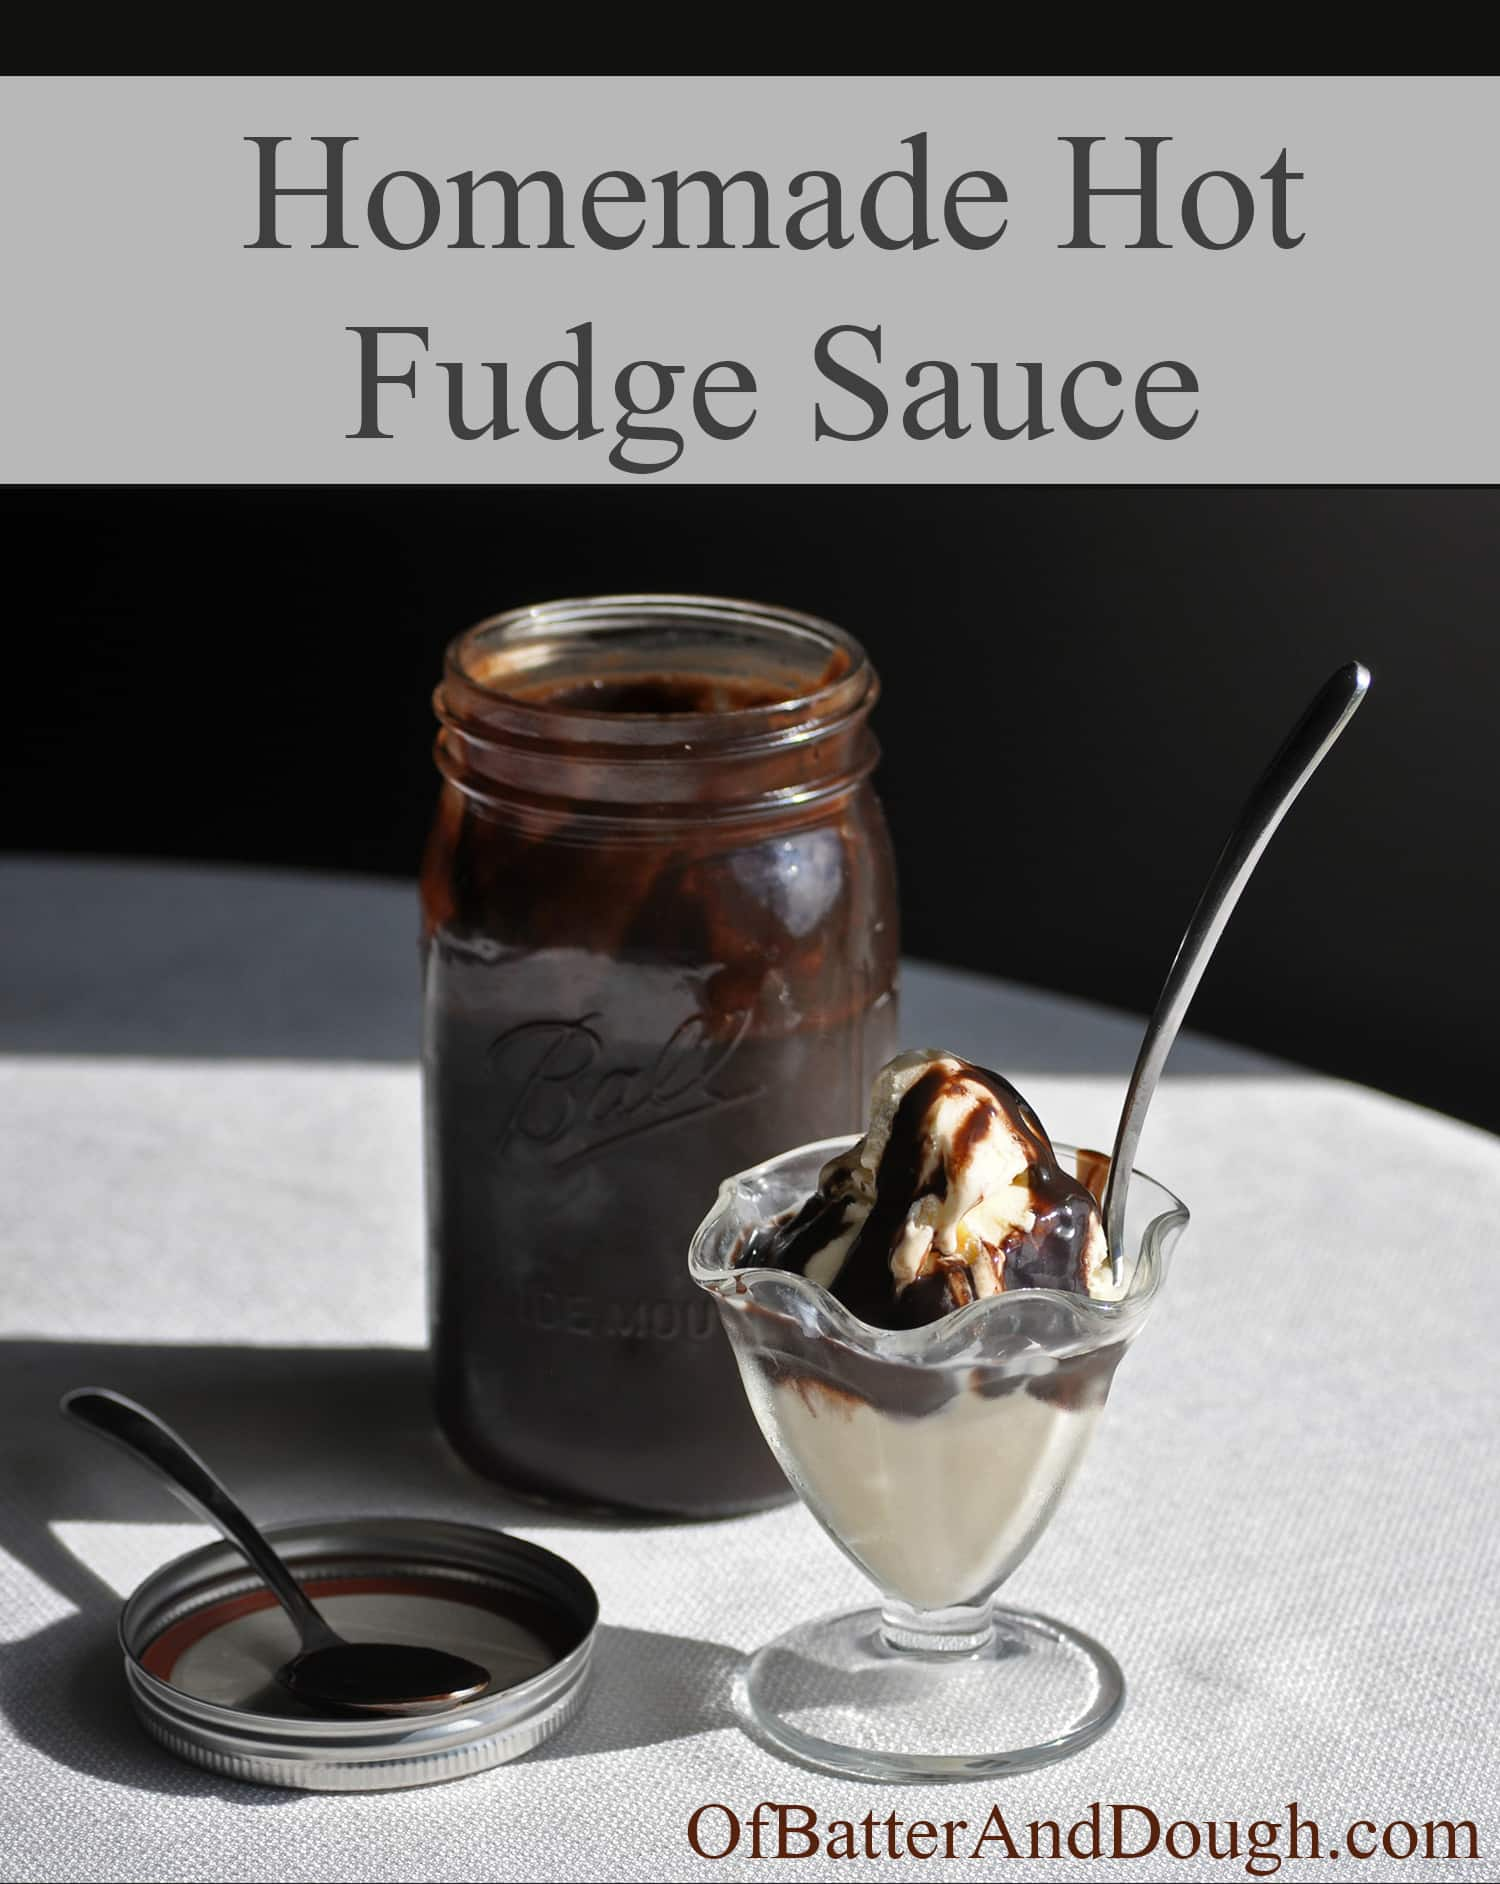 Best of all, this homemade hot fudge sauce is incredibly easy.